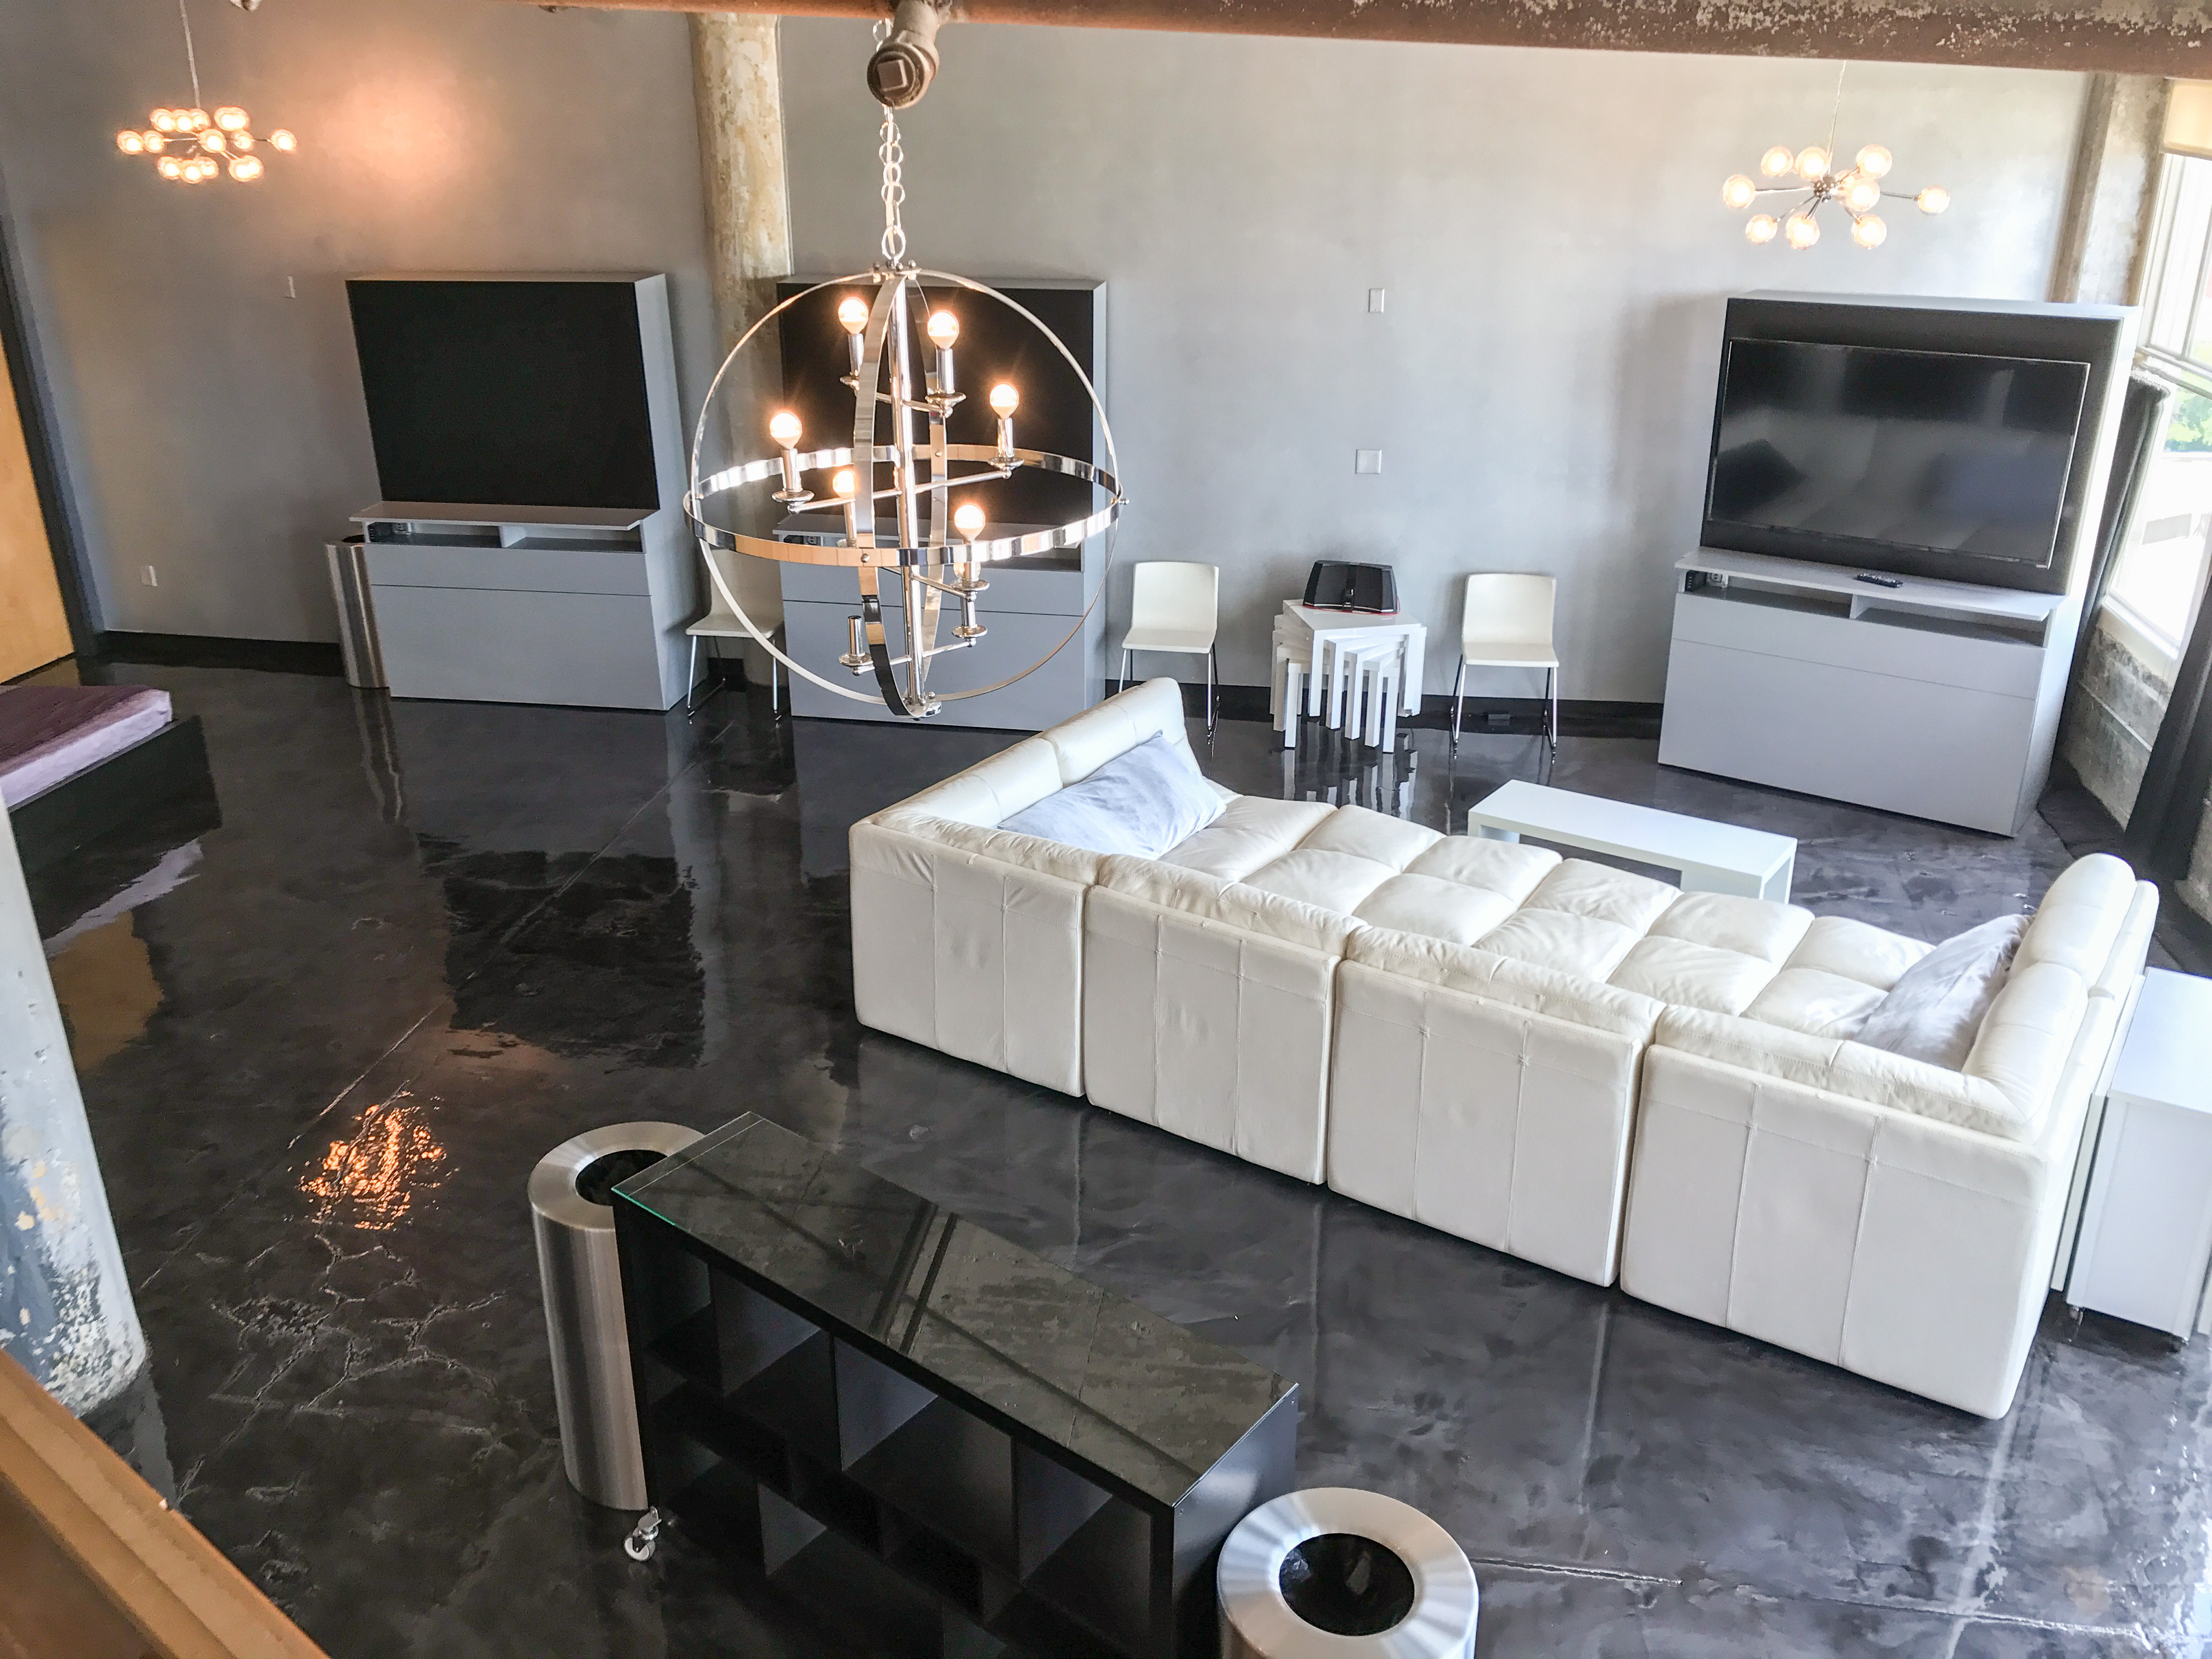 Loft Reverie Hotel 804 - An Industrial Chic Room with Great Views + Cloud Sofa + HDTV + Beds + Kitch